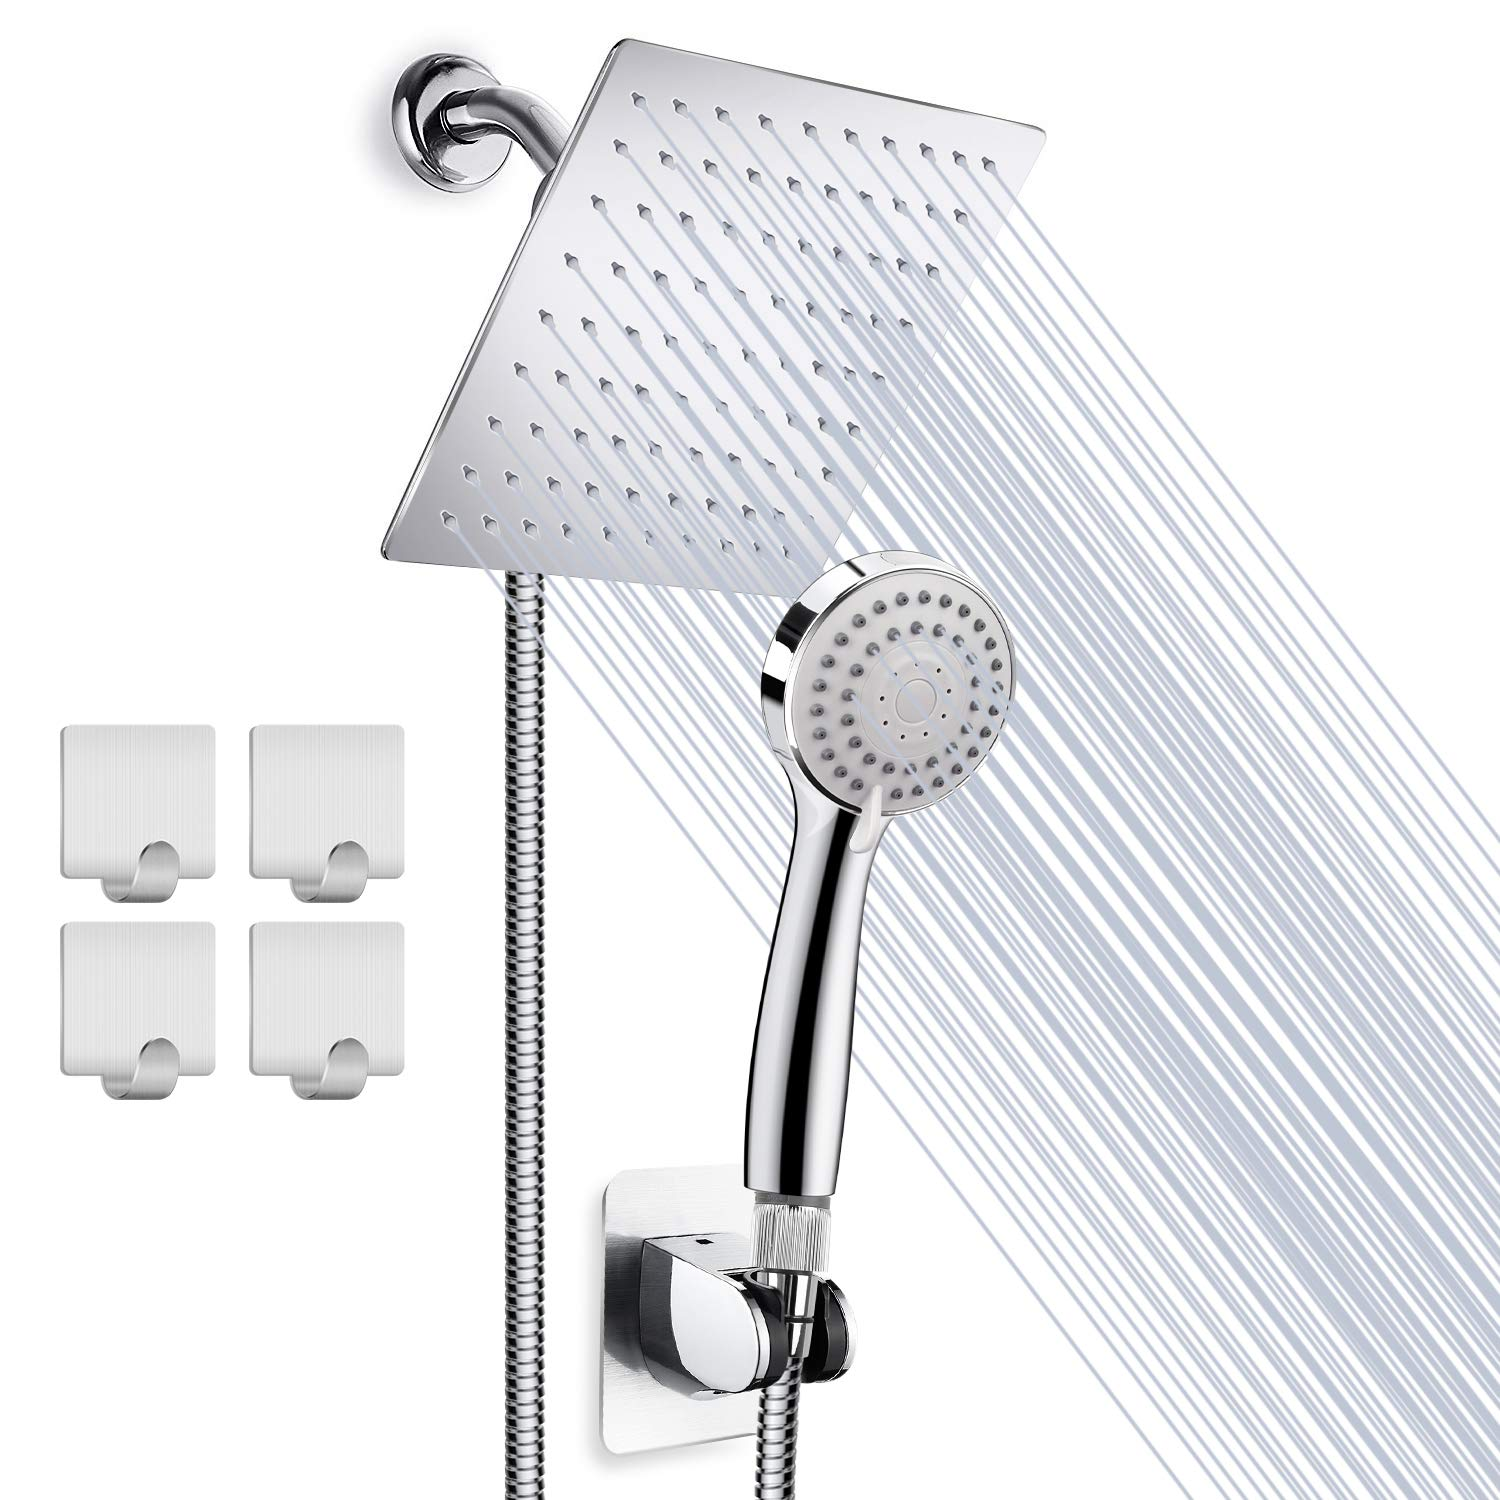 High Pressure 8 Rainfall Stainless Steel Shower Head Handheld Combo with 60 Hose Anti-leak Shower Head with Holder, Flow Regulator, Chrome, 4 Shower Hooks